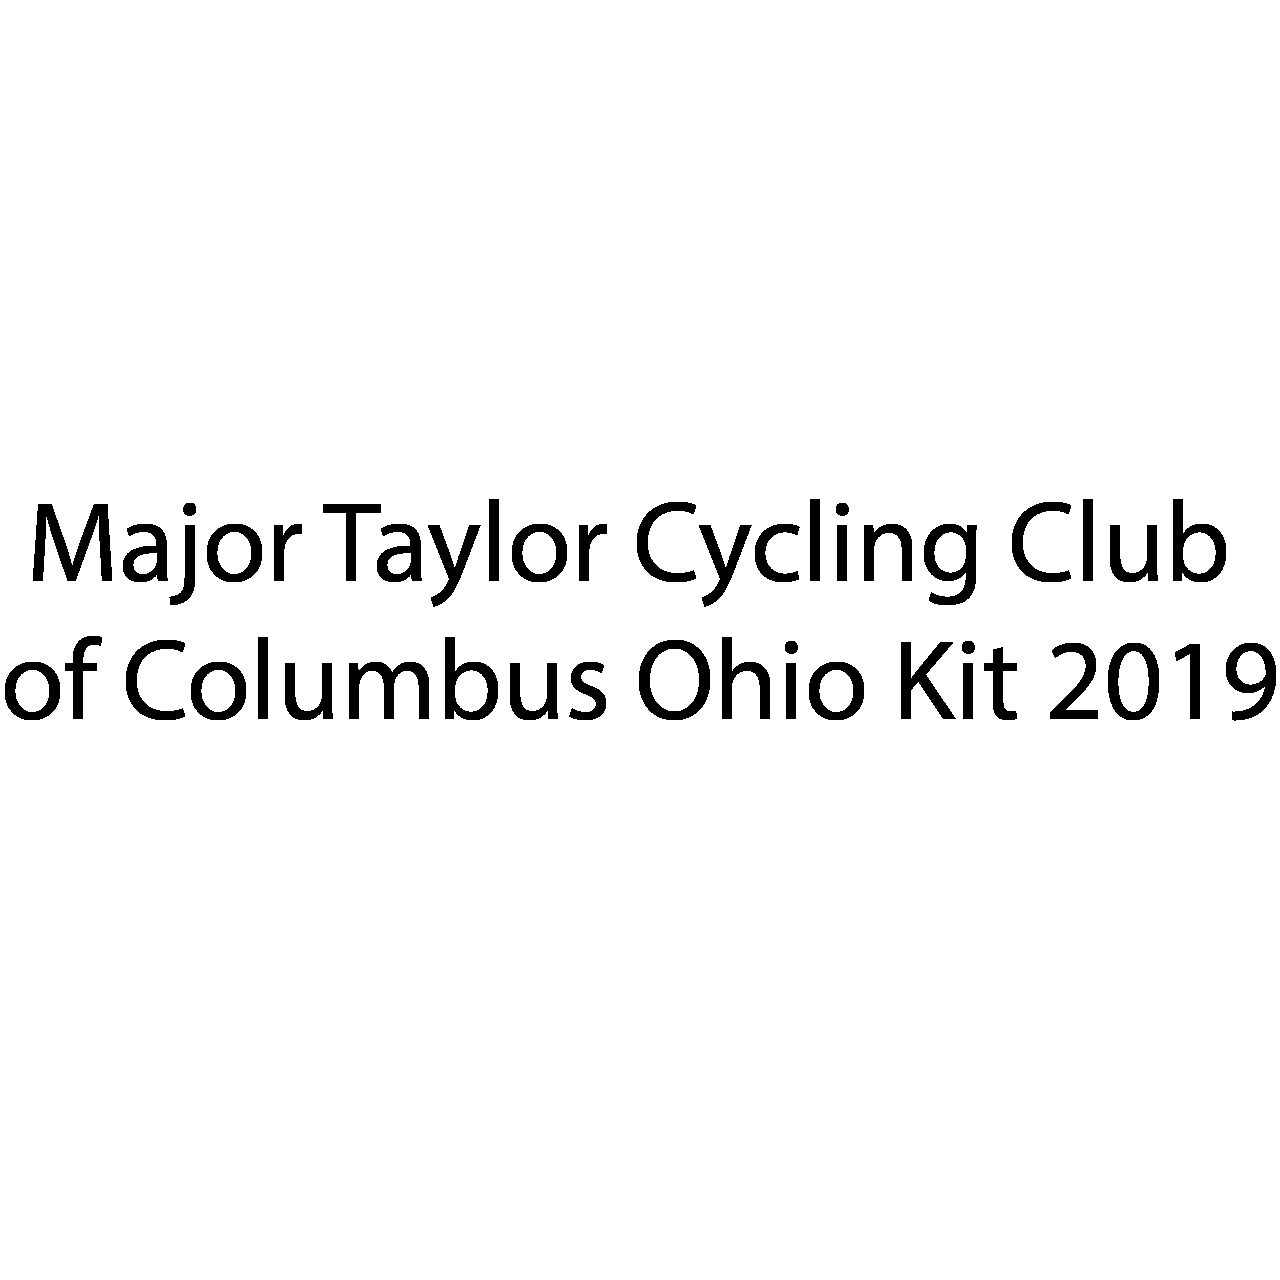 Major Taylor Cycling Club of Columbus Ohio Kit: (Red Kit)